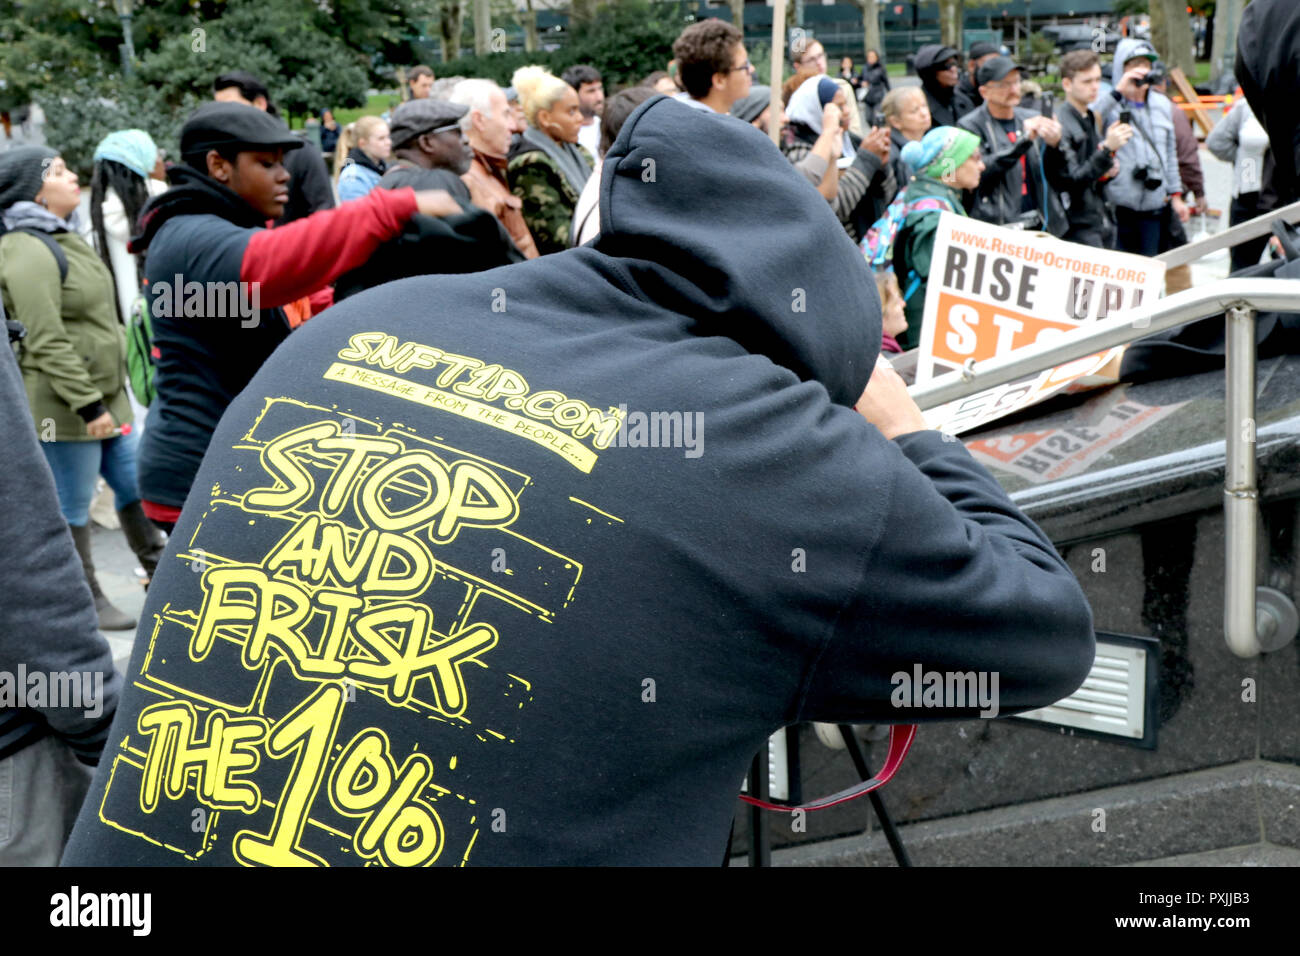 """New York City, New York, USA. 22nd Oct, 2018. Activist organization """"""""˜RiseUpOctober' held its 23rd National Day of Protest to Stop Police Brutality at Foley Square in downtown Manhattan on 22 October 2018. The midday rally and march is a day that activists come together to with those who have lost loved one's as a result of encounters with US law enforcement. Credit: G. Ronald Lopez/ZUMA Wire/Alamy Live News Stock Photo"""